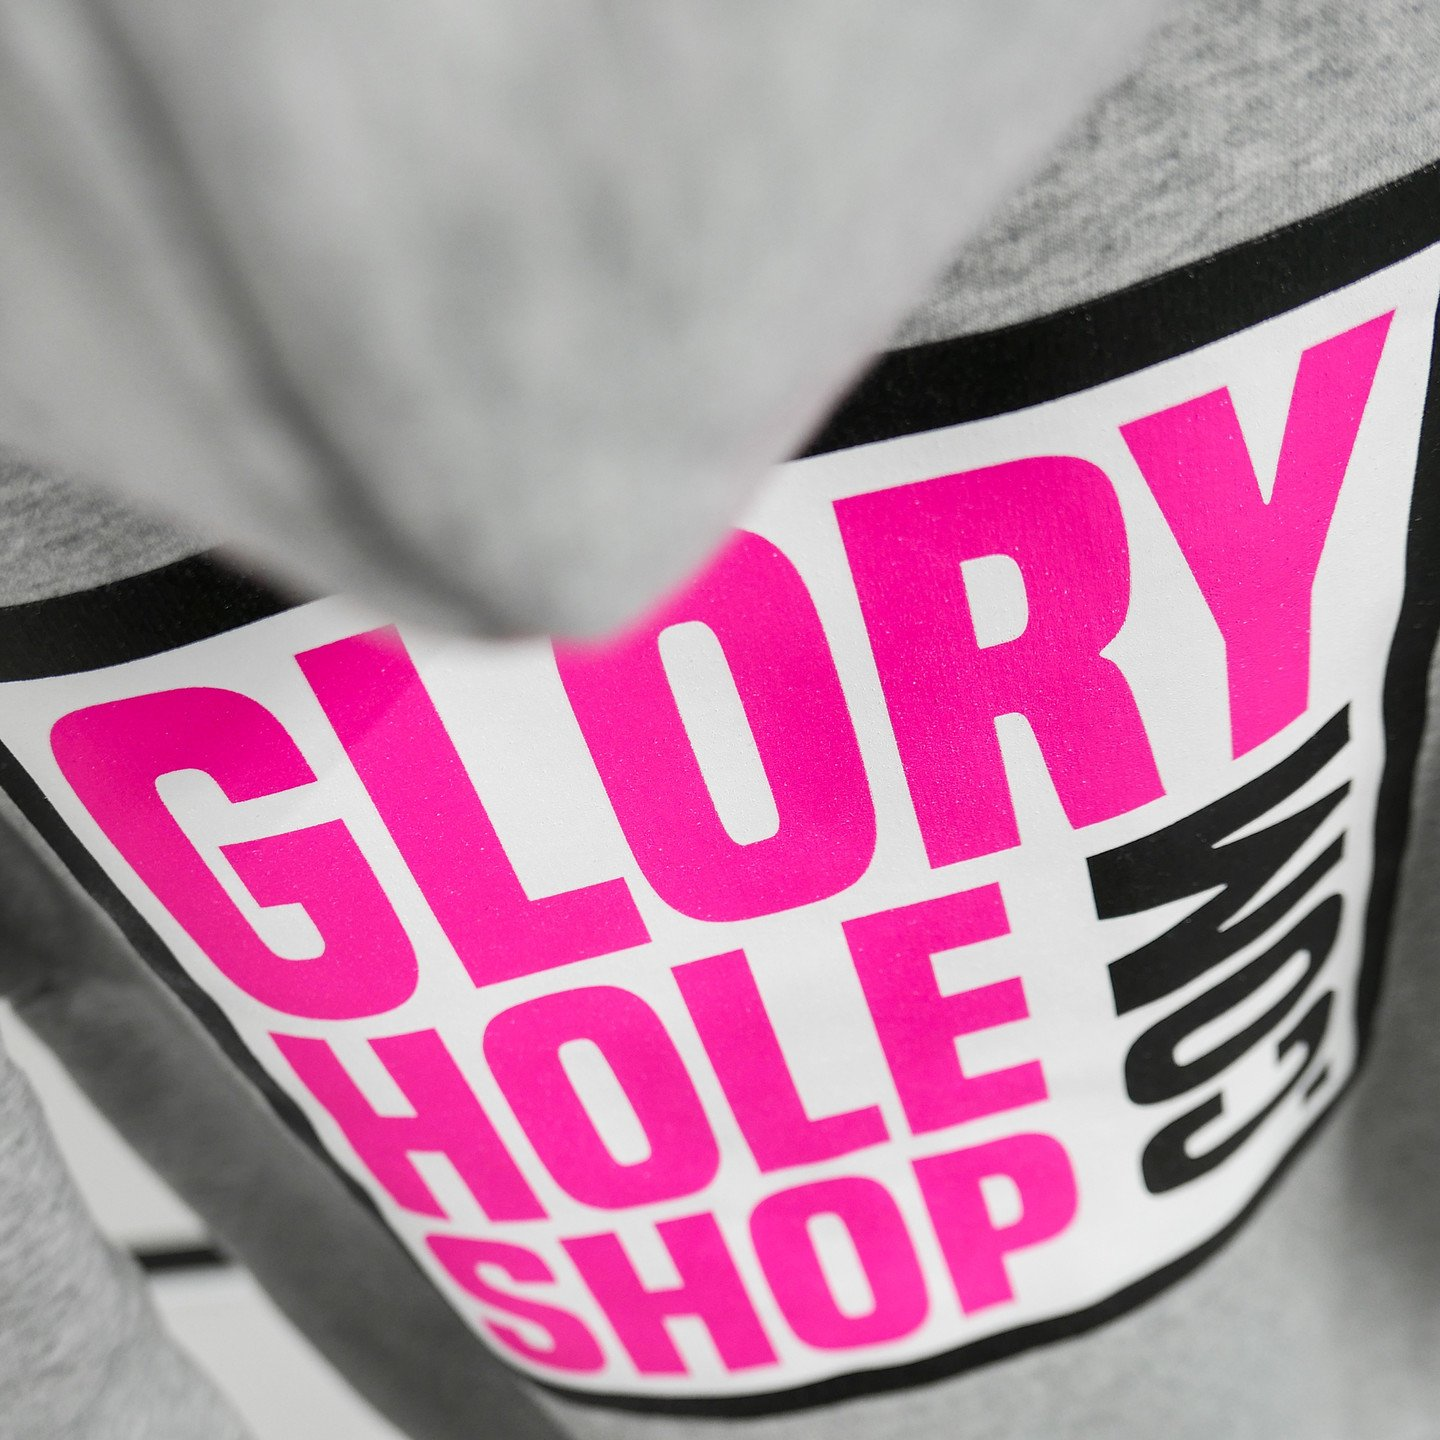 Glory Hole Logo Hoodie Heather Grey / Scream Pink / Black / White GHSS-HD-HTHR-001